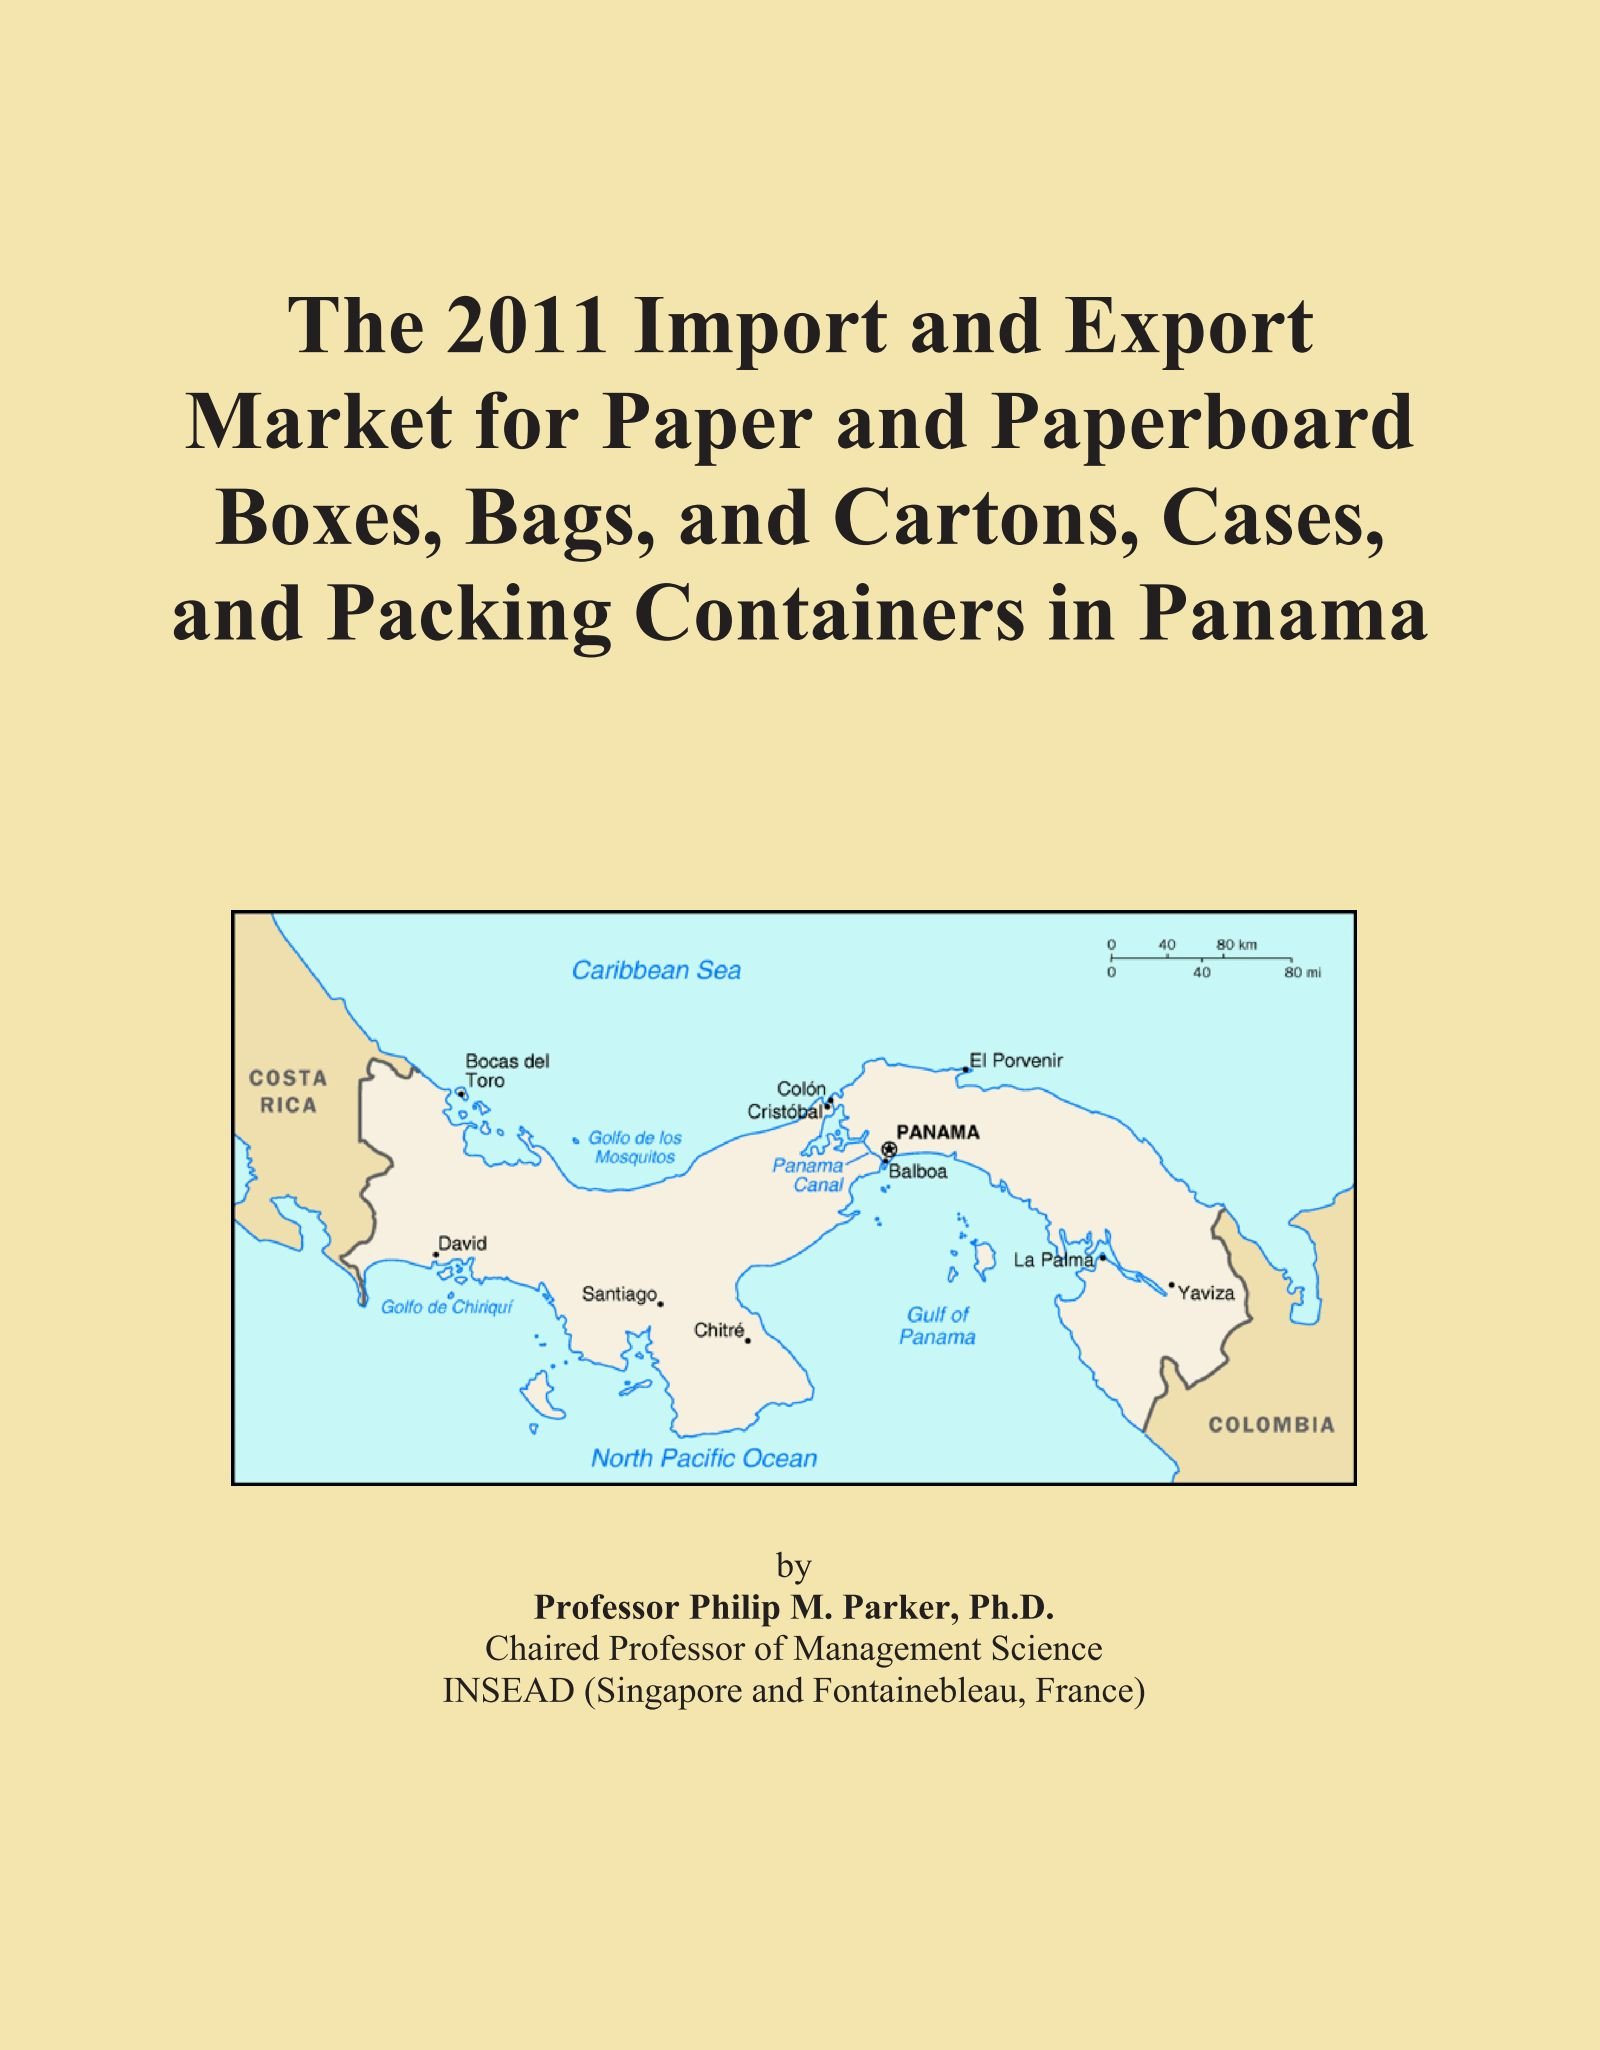 Download The 2011 Import and Export Market for Paper and Paperboard Boxes, Bags, and Cartons, Cases, and Packing Containers in Panama pdf